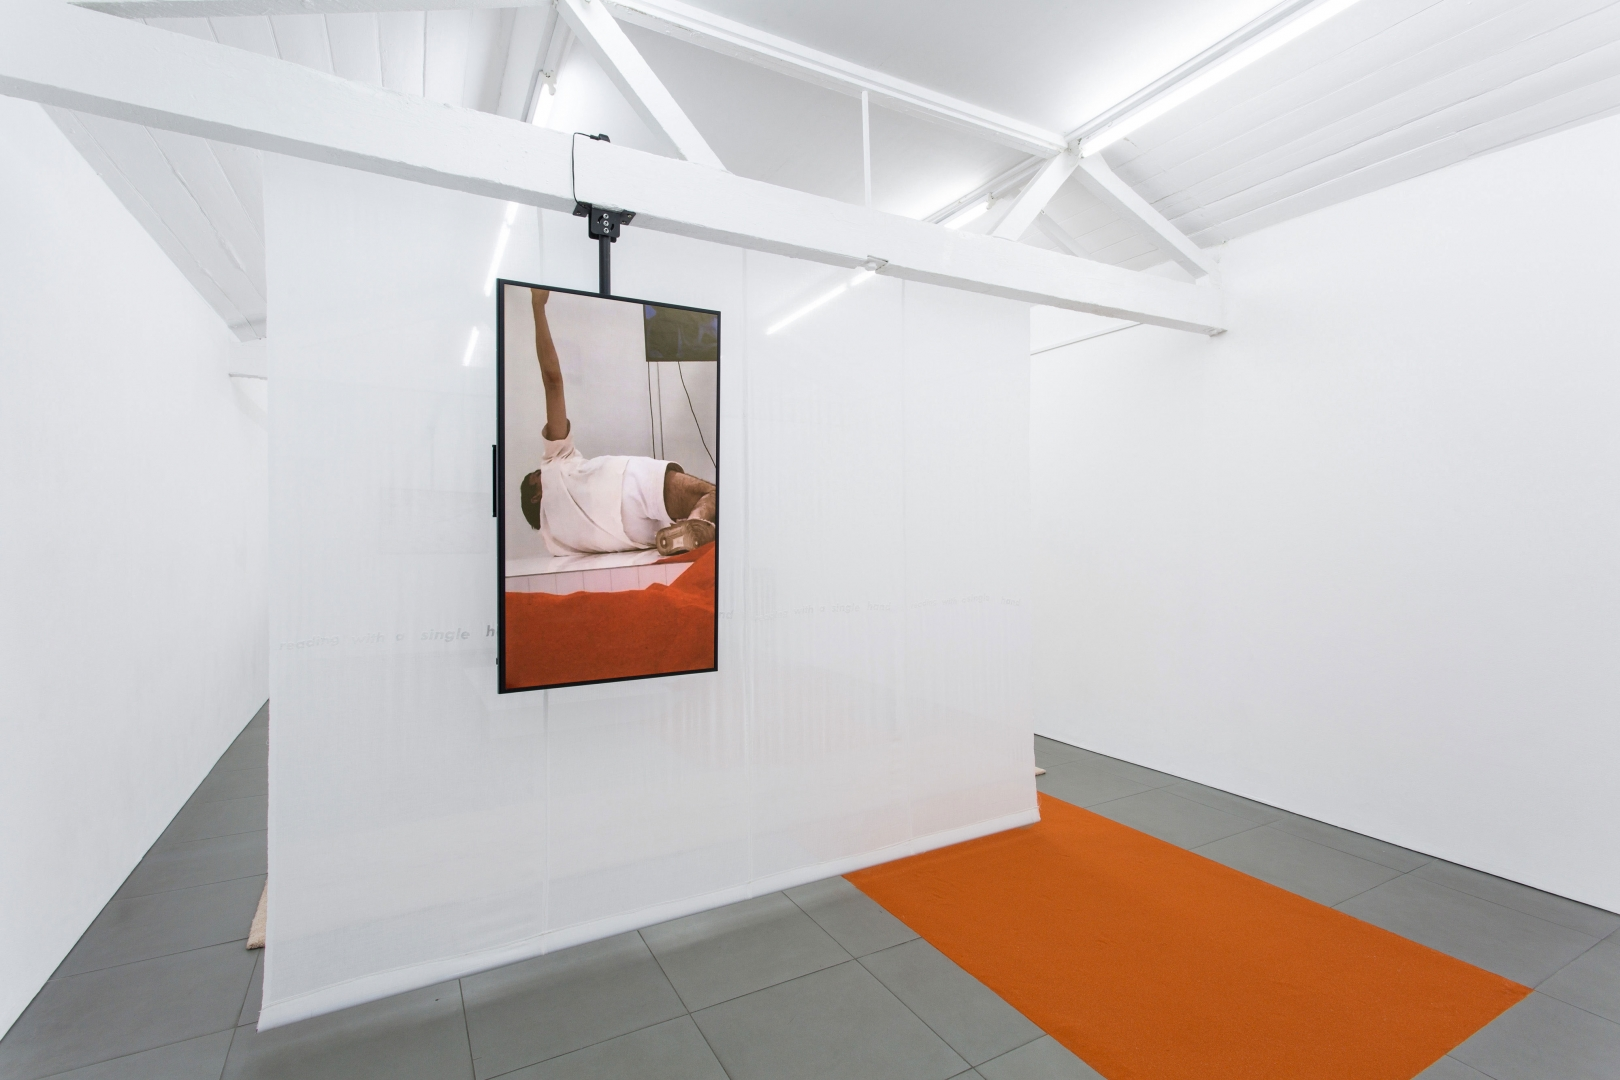 YGRG 14X: reading with a single hand V and YGRG Outlet,  solo exhibition at Cell Project Space, London, 2018.